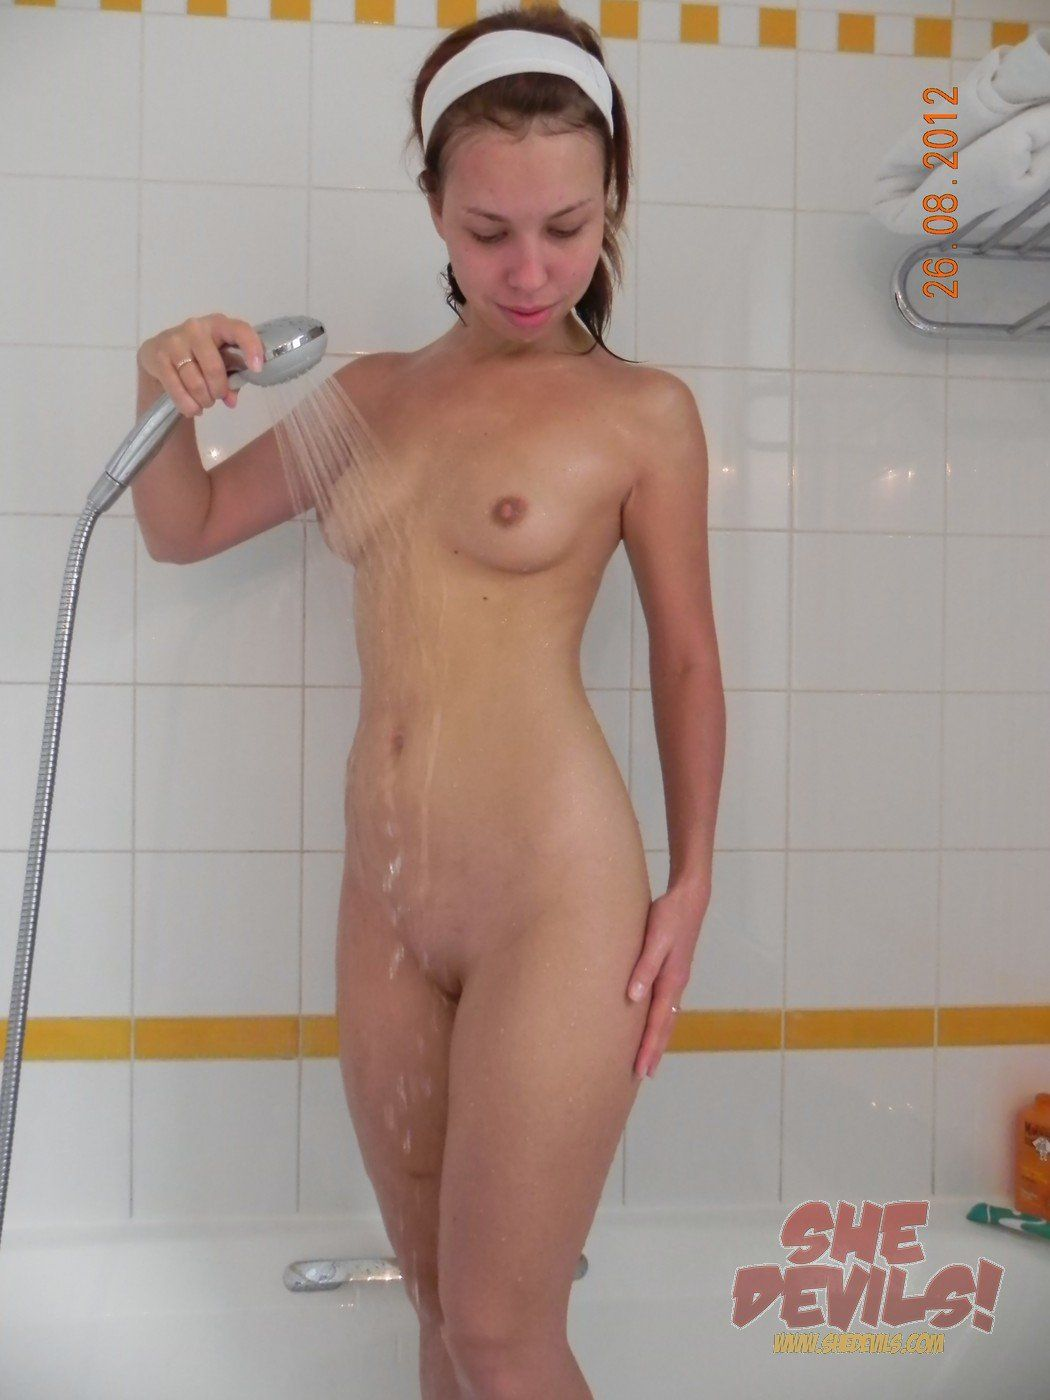 Nude girl in shower pics